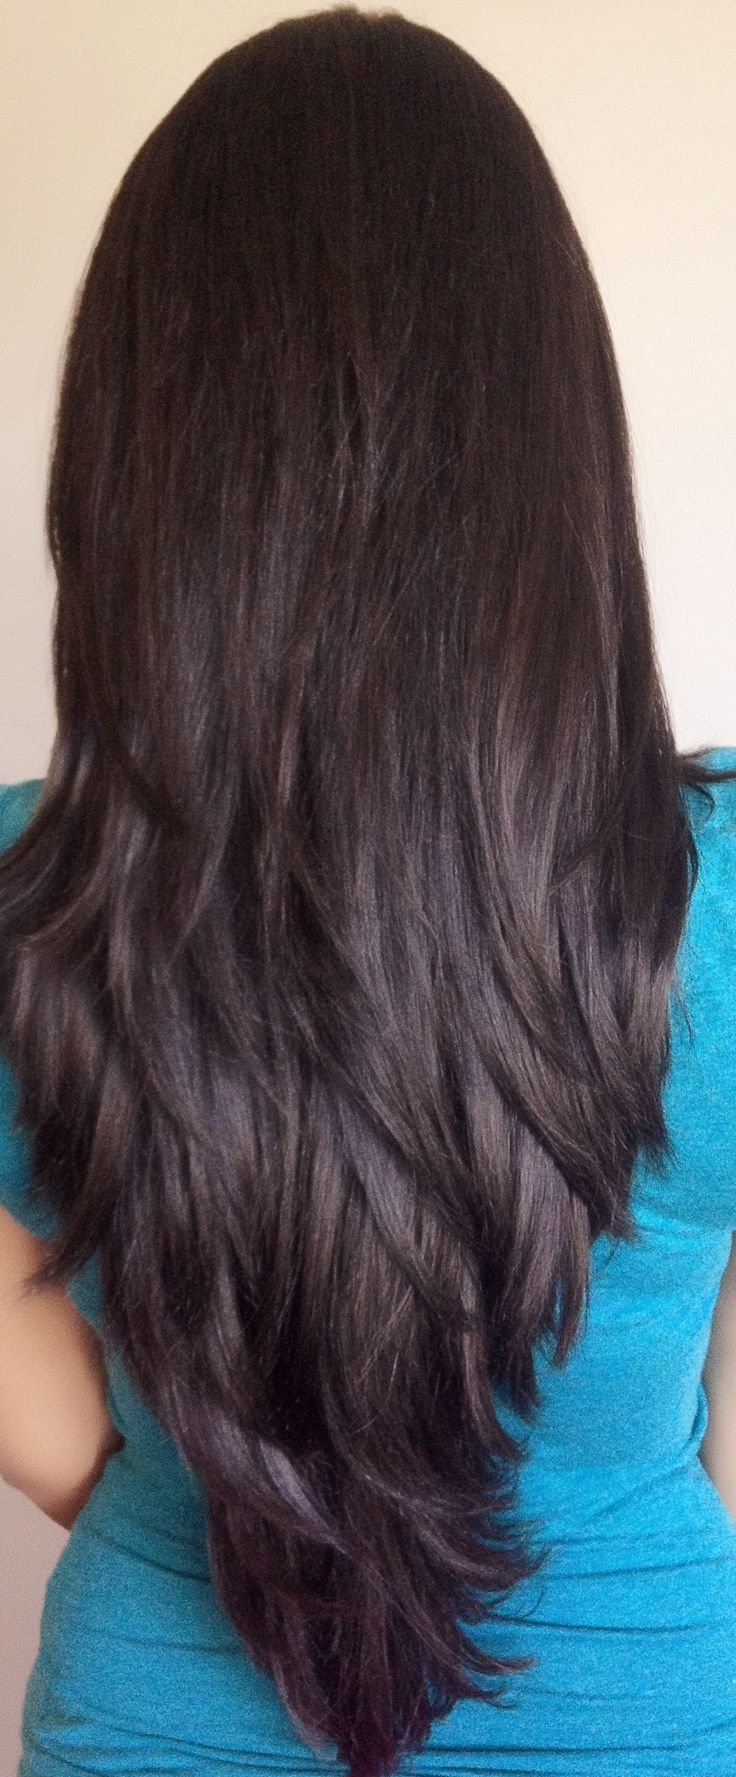 25 Beautiful Best Hairstyle For Indian Girls – Wodip | Hair within Best Indian Hairstyles For Long Hair